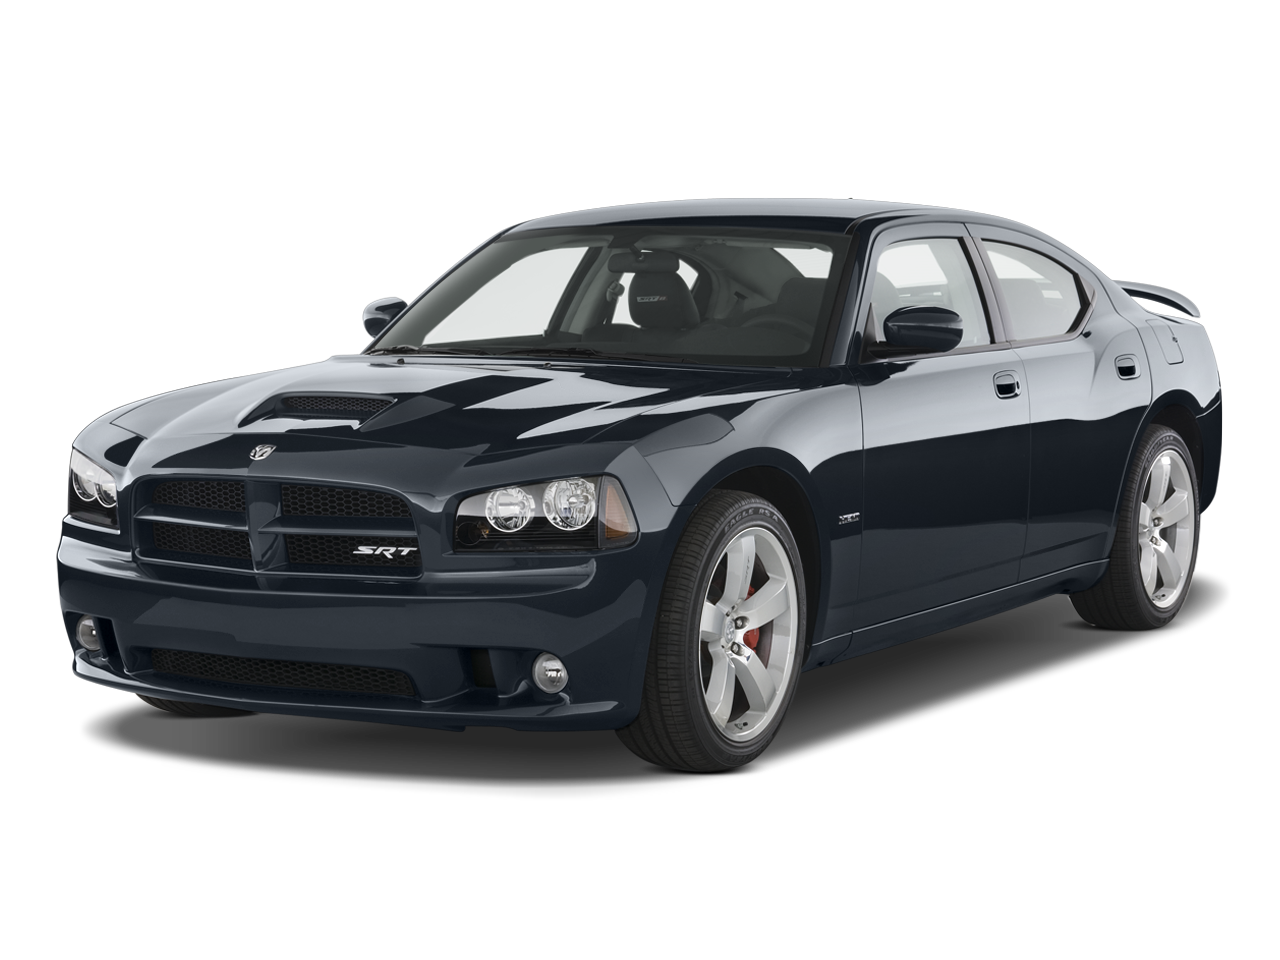 2009 Dodge Charger Srt8 Dodge Sport Coupe Review